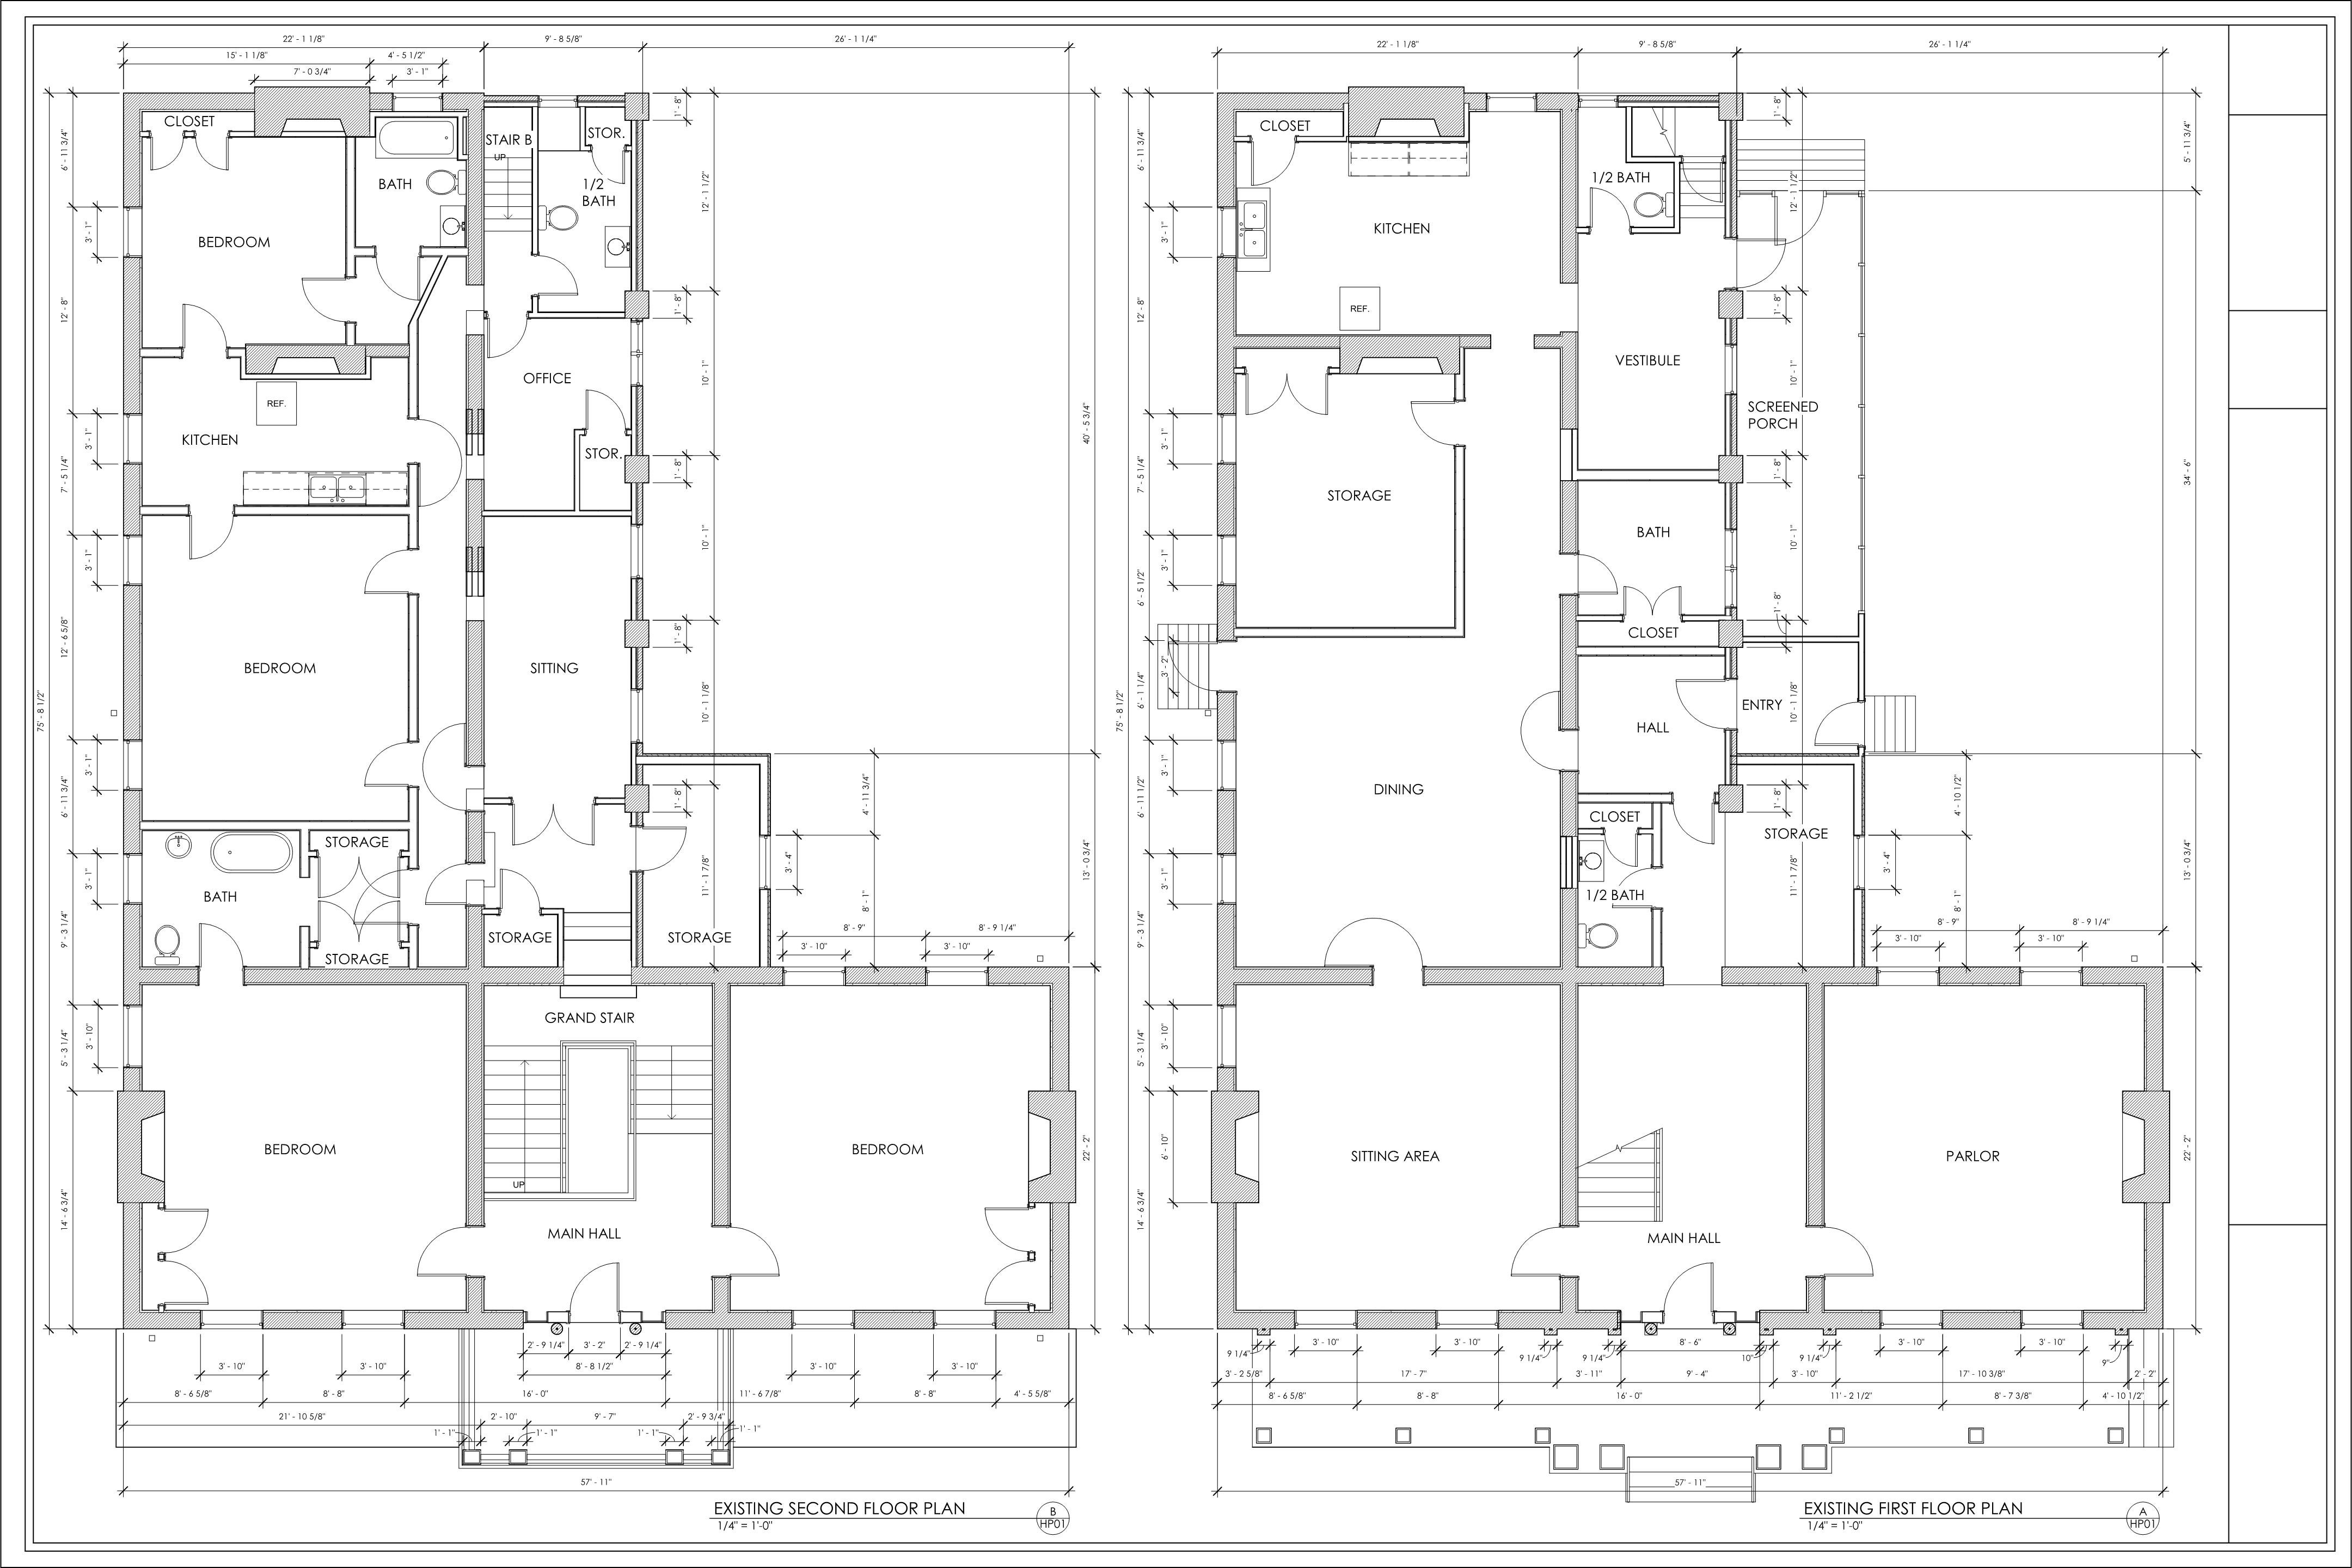 Measured Drawings of both First and Second Floors per Field Measurement, Fall 2017.